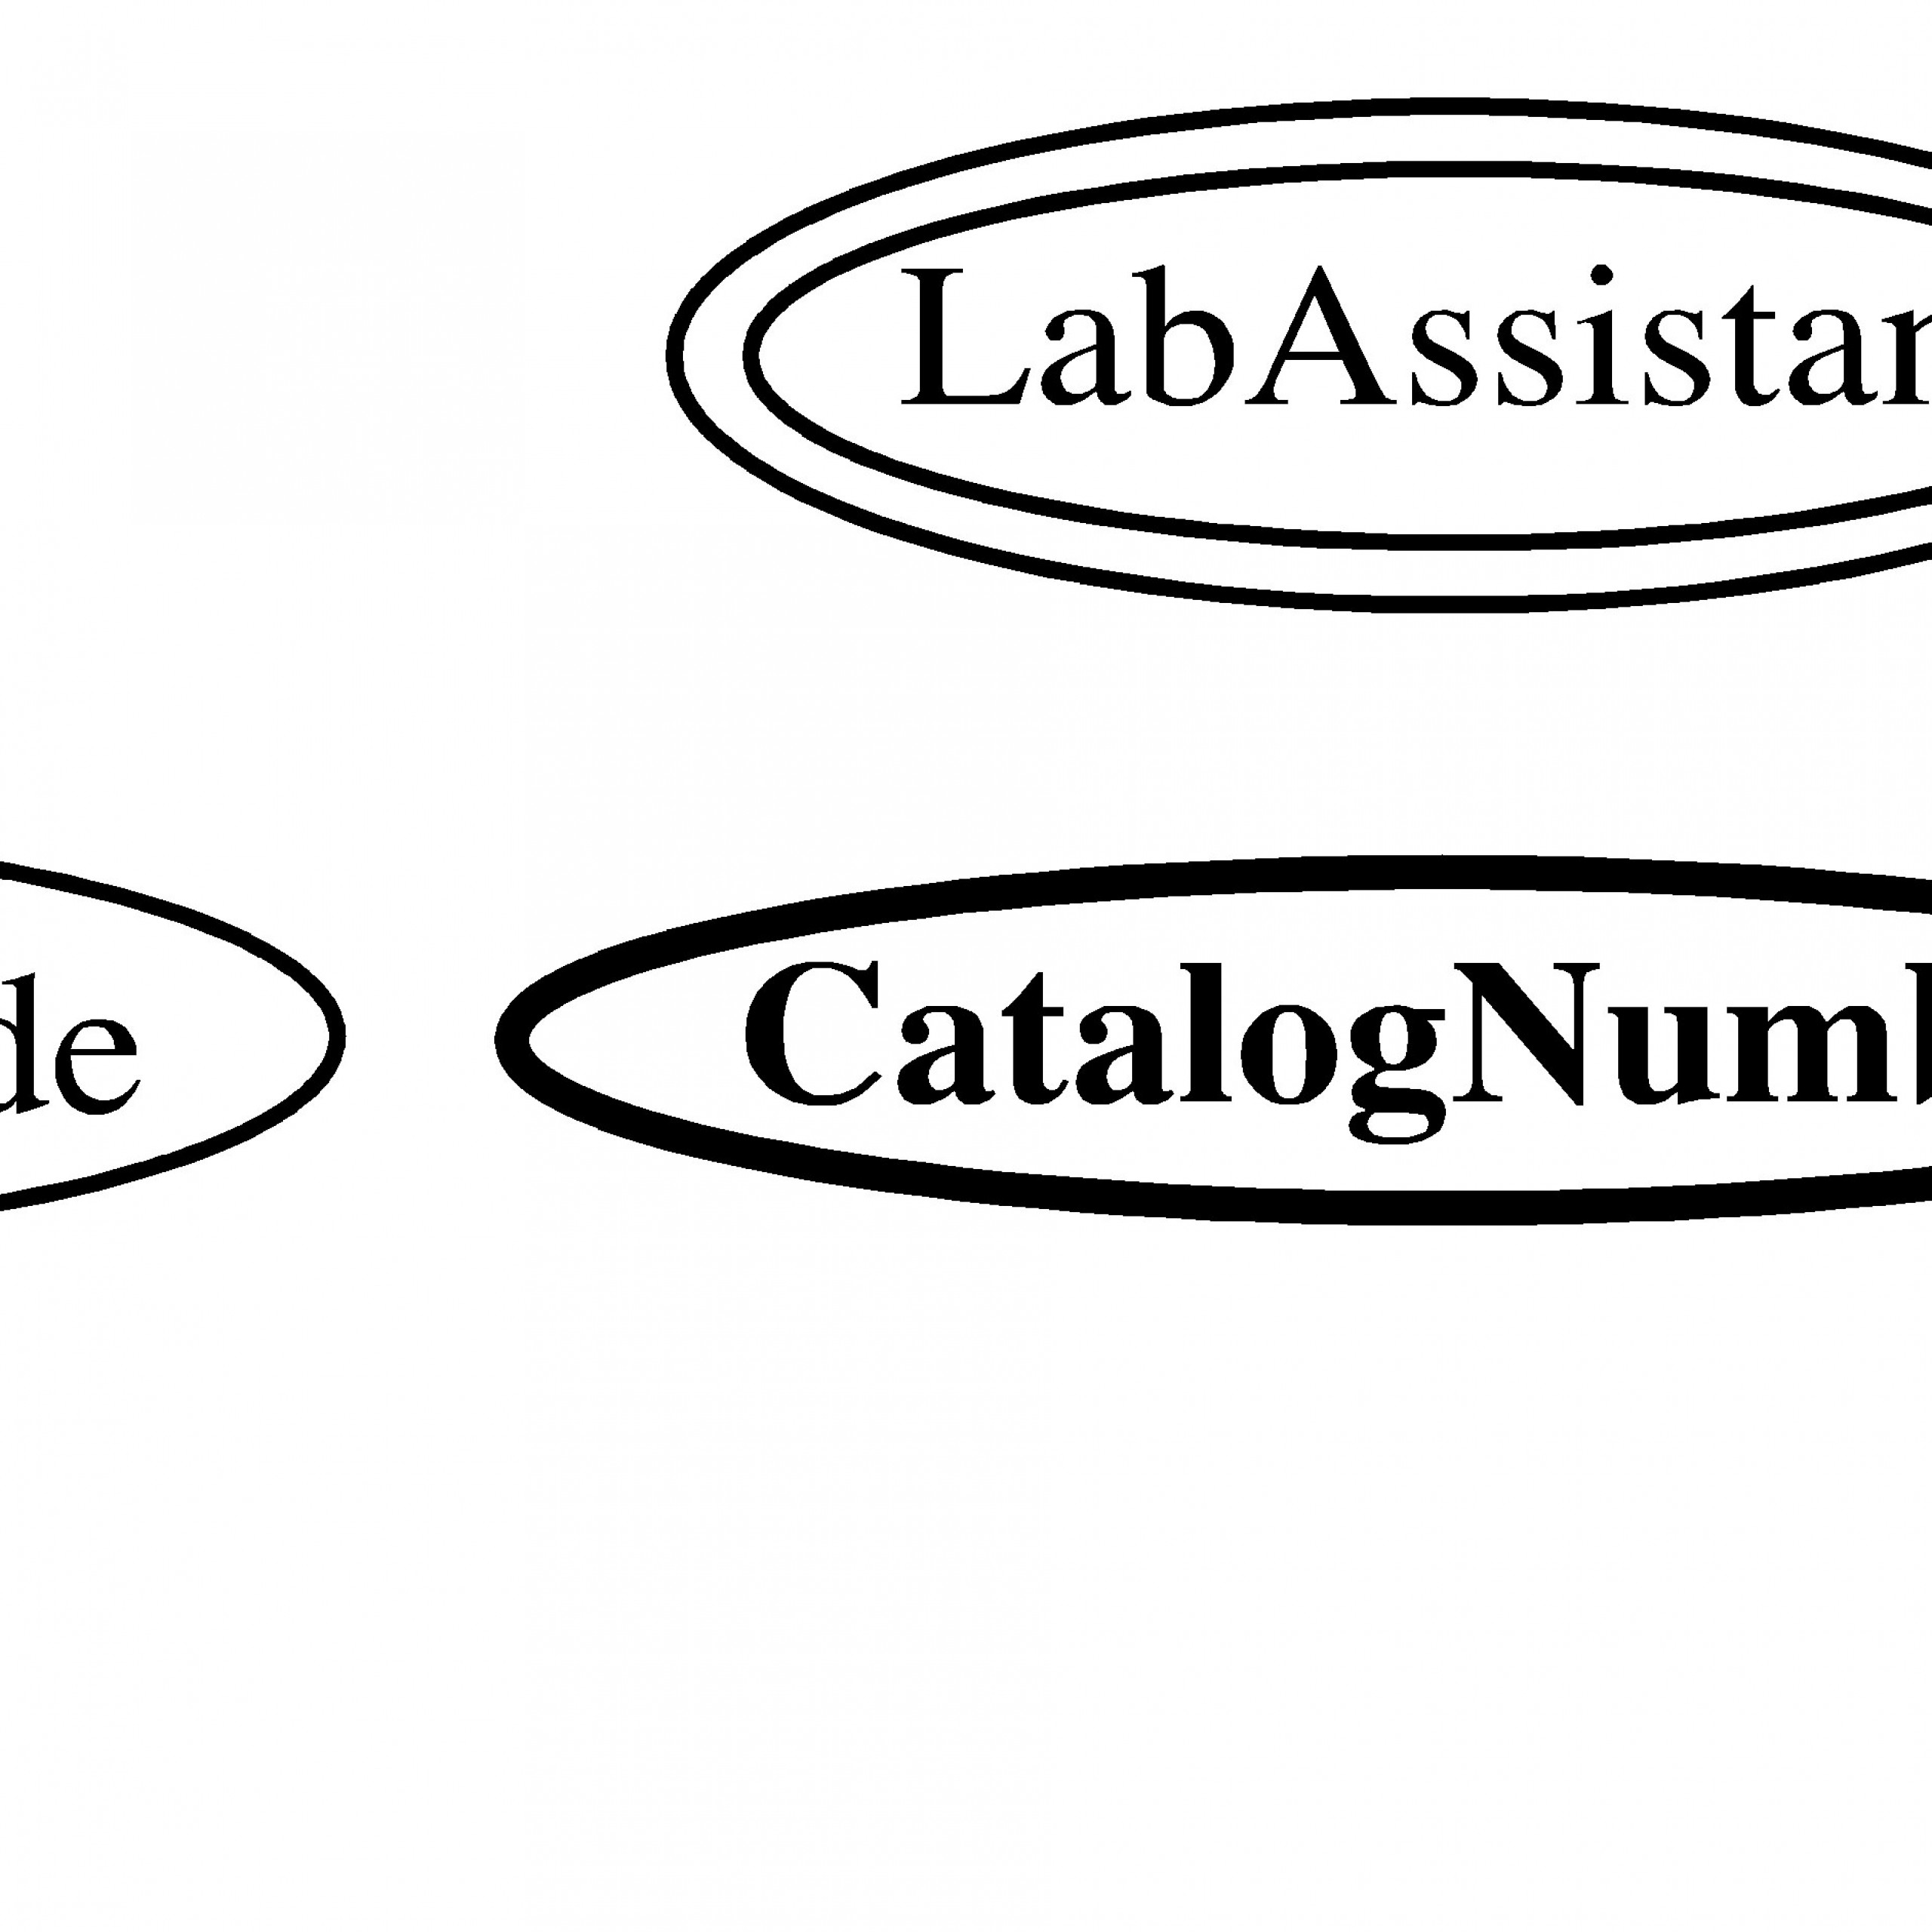 Entity-Relationship Model within Double Line In Er Diagram